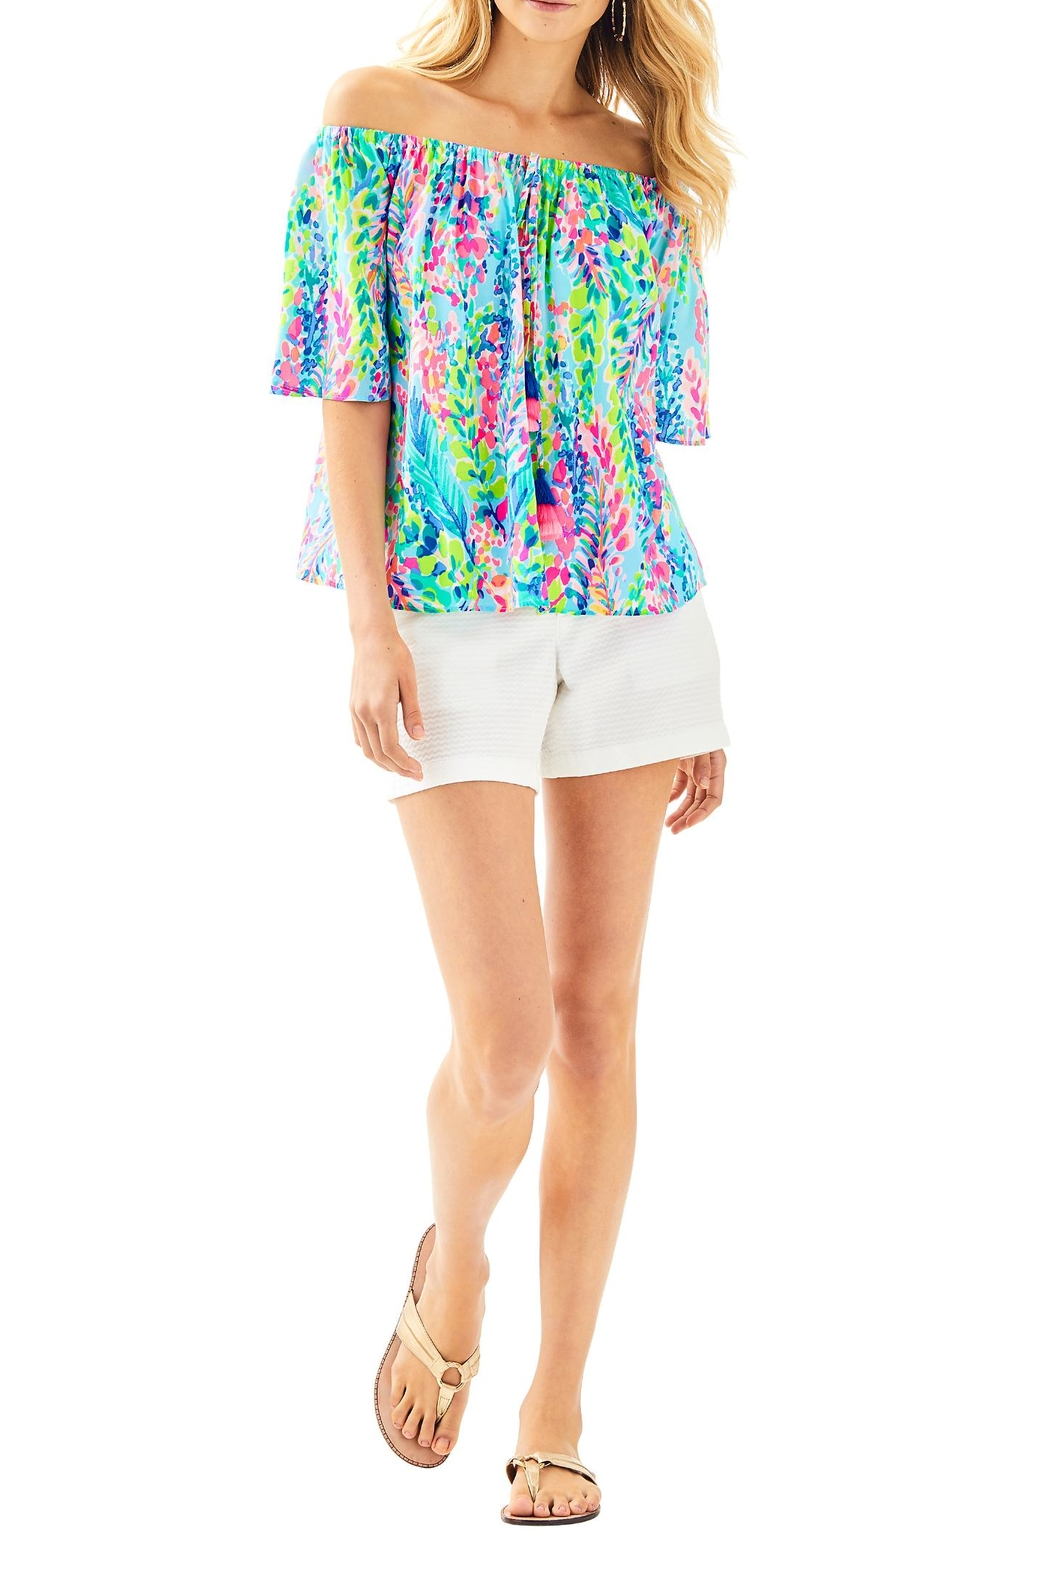 Lilly Pulitzer Sain Top - Side Cropped Image